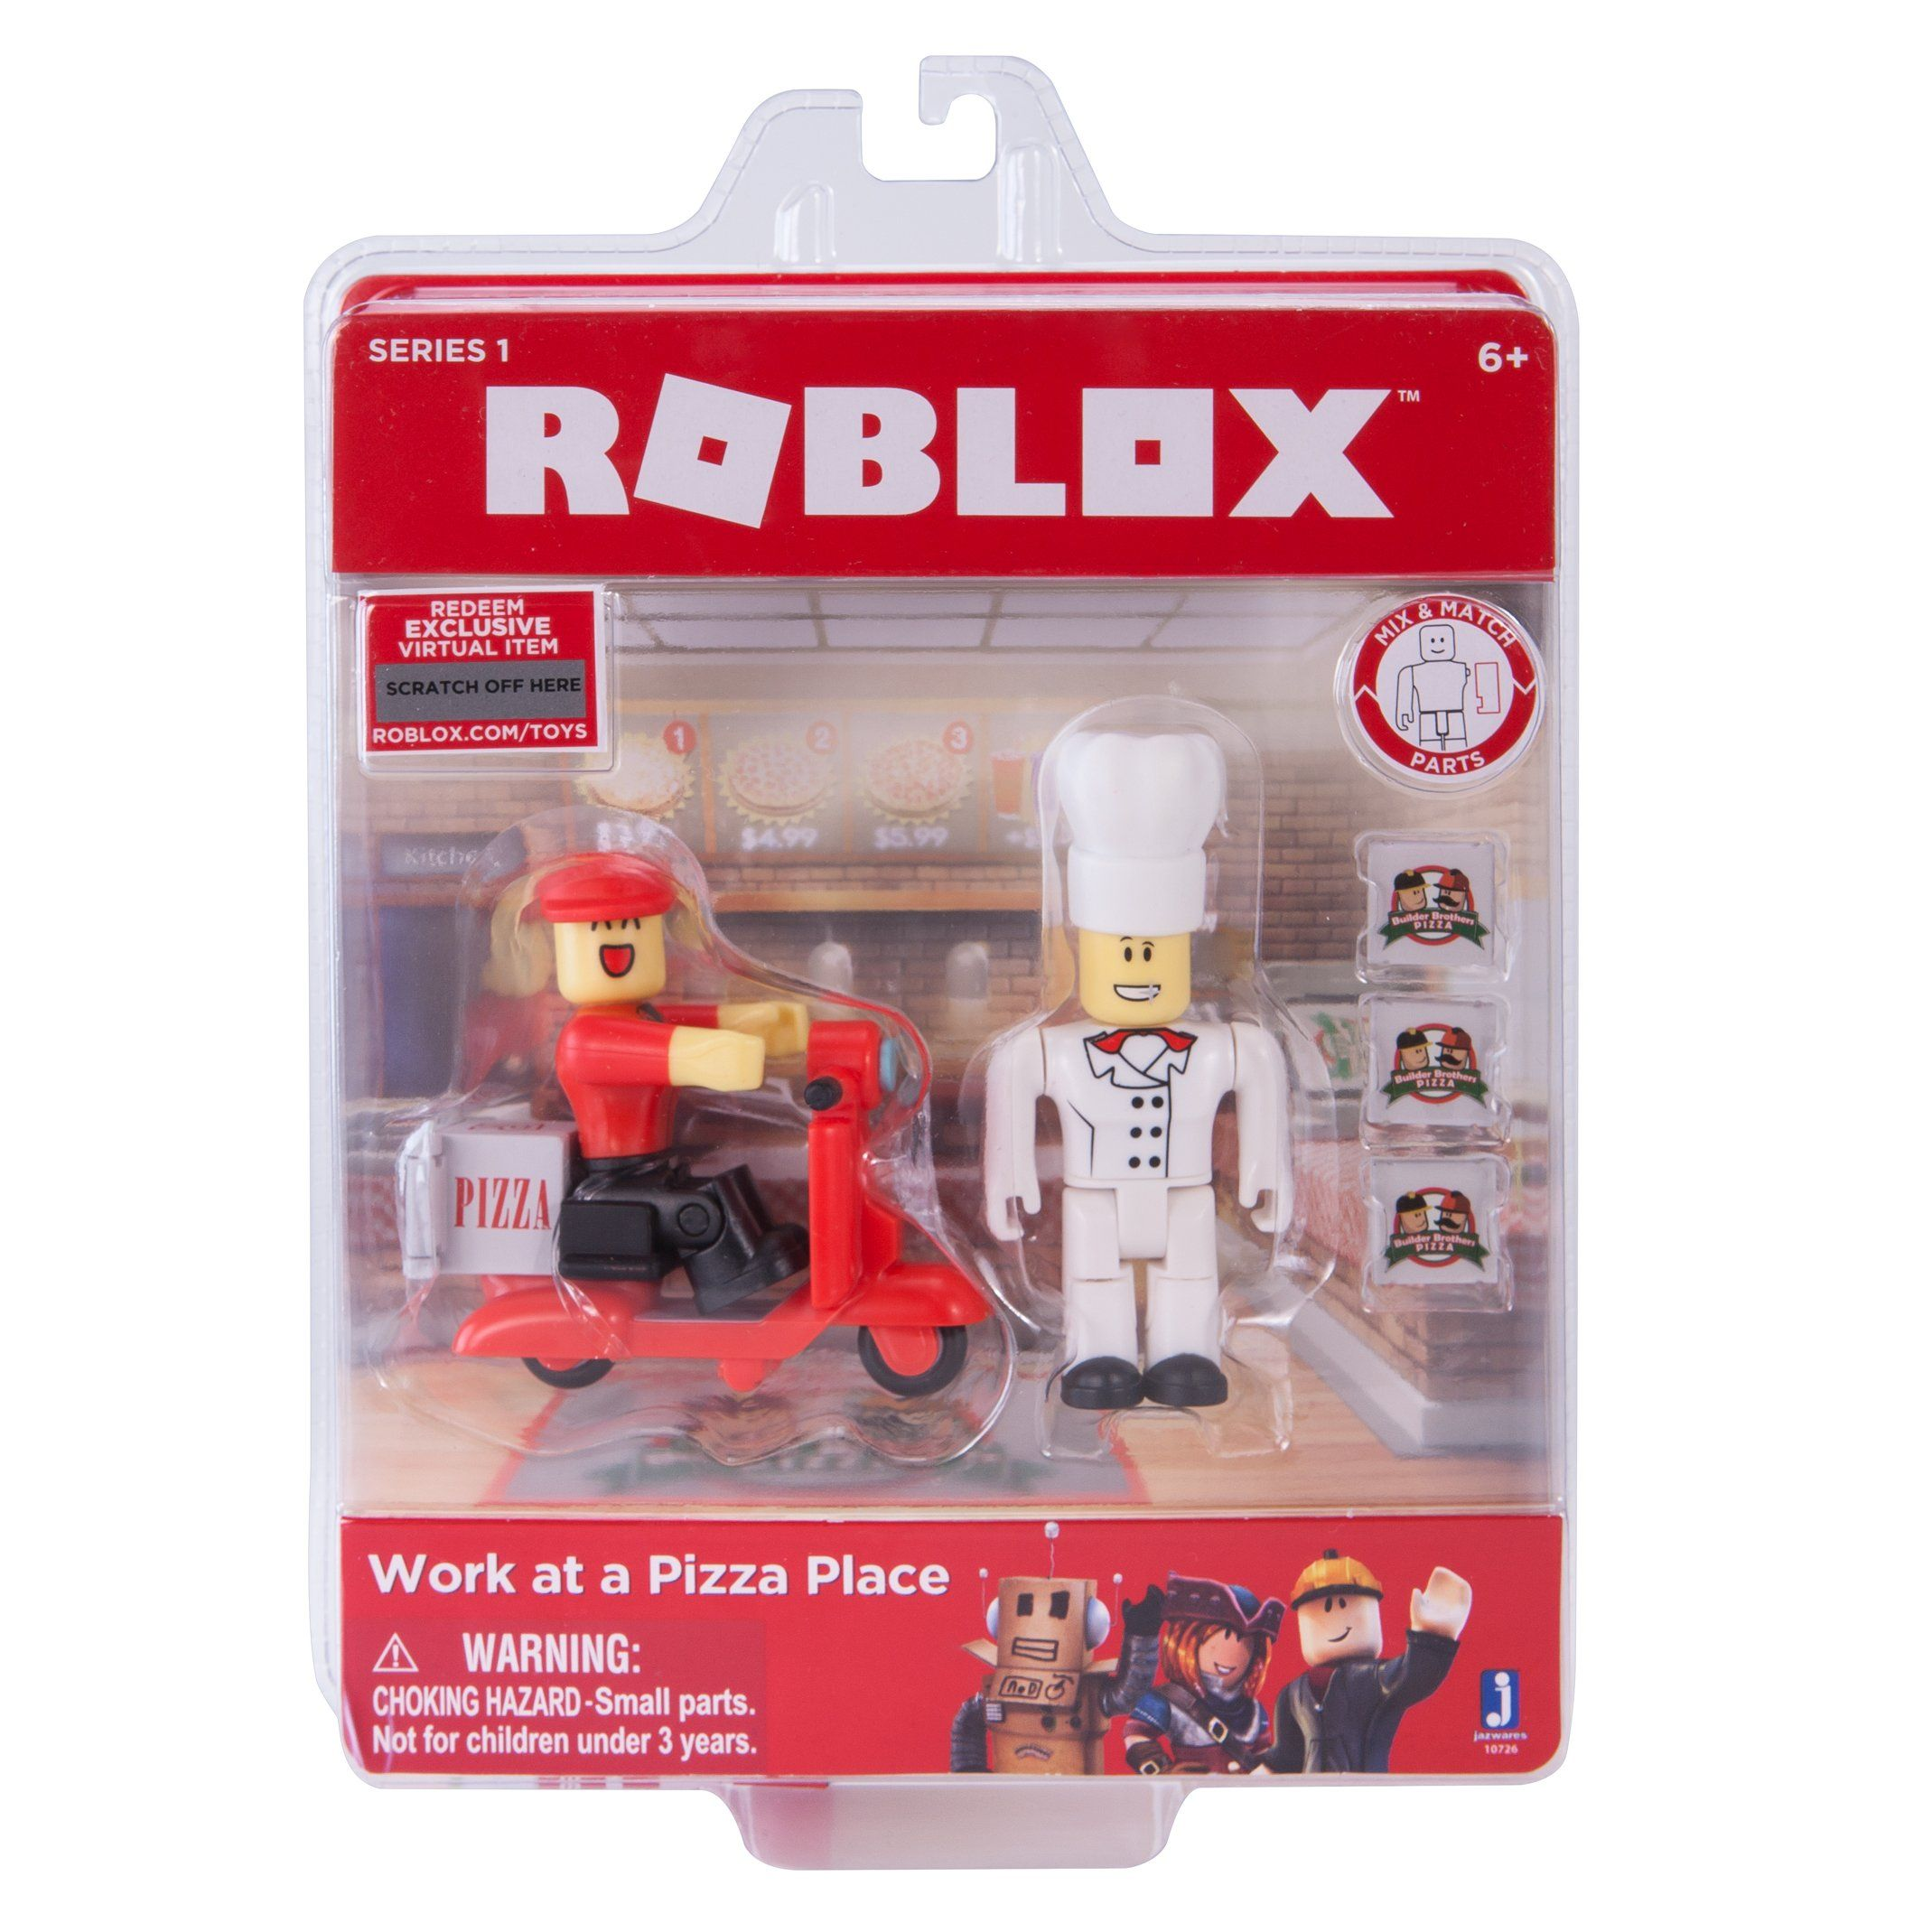 ROBLOX Work At a Pizza Place Action Figure. Builder brothers pizza wants  your help to